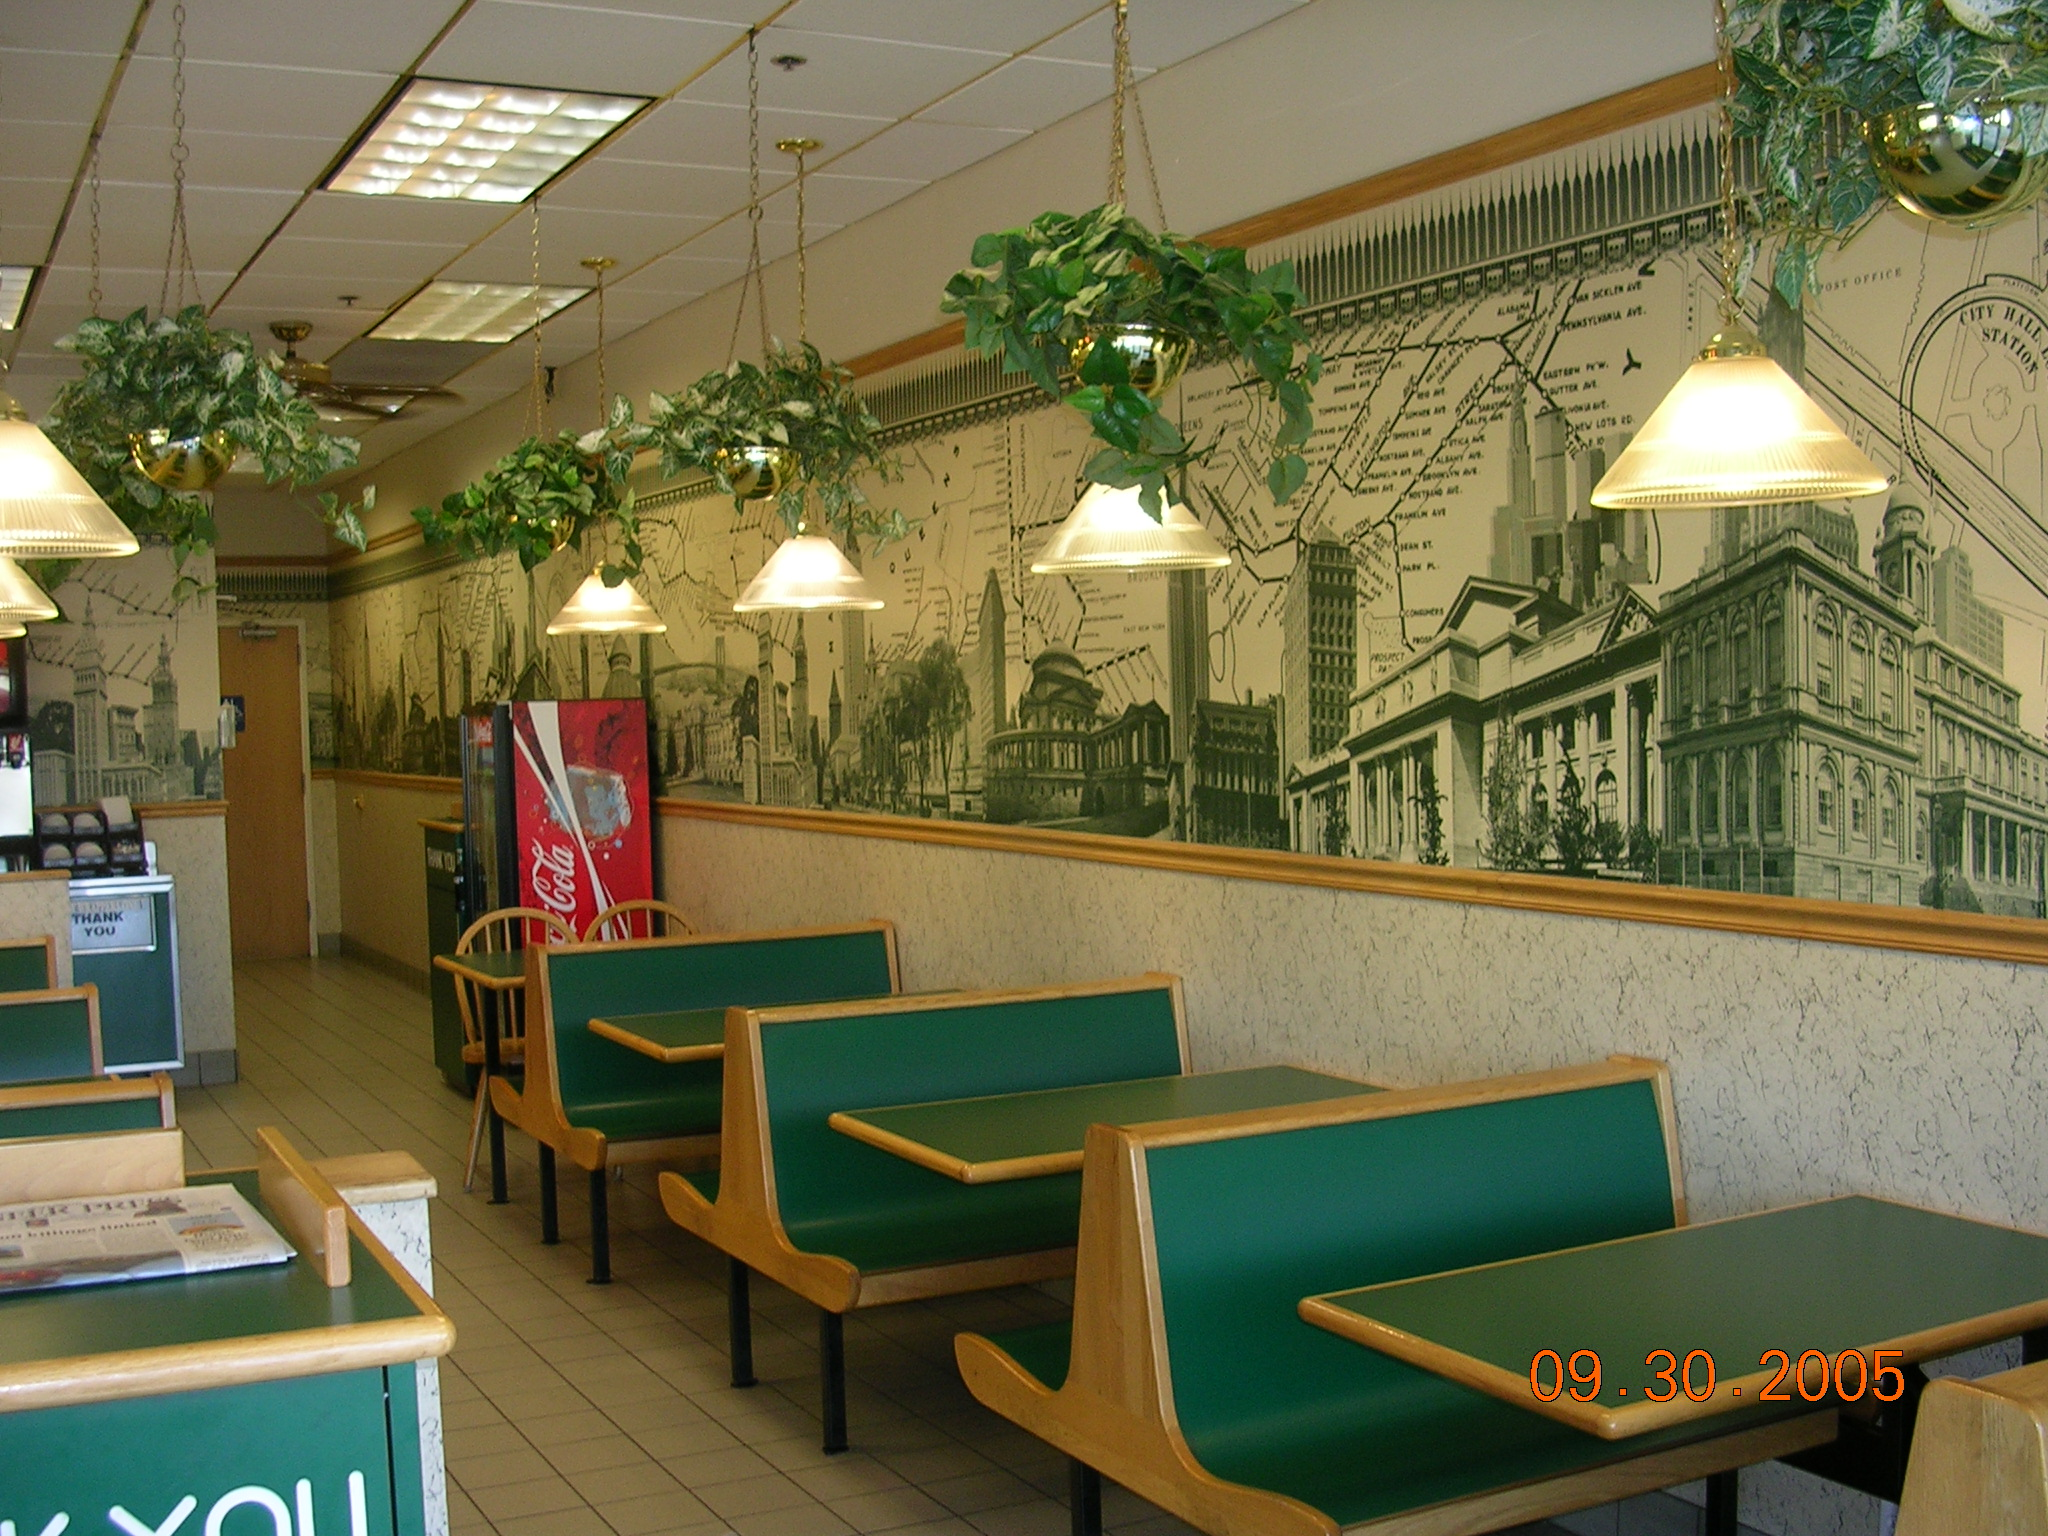 Subway Wallpaper Restaurant